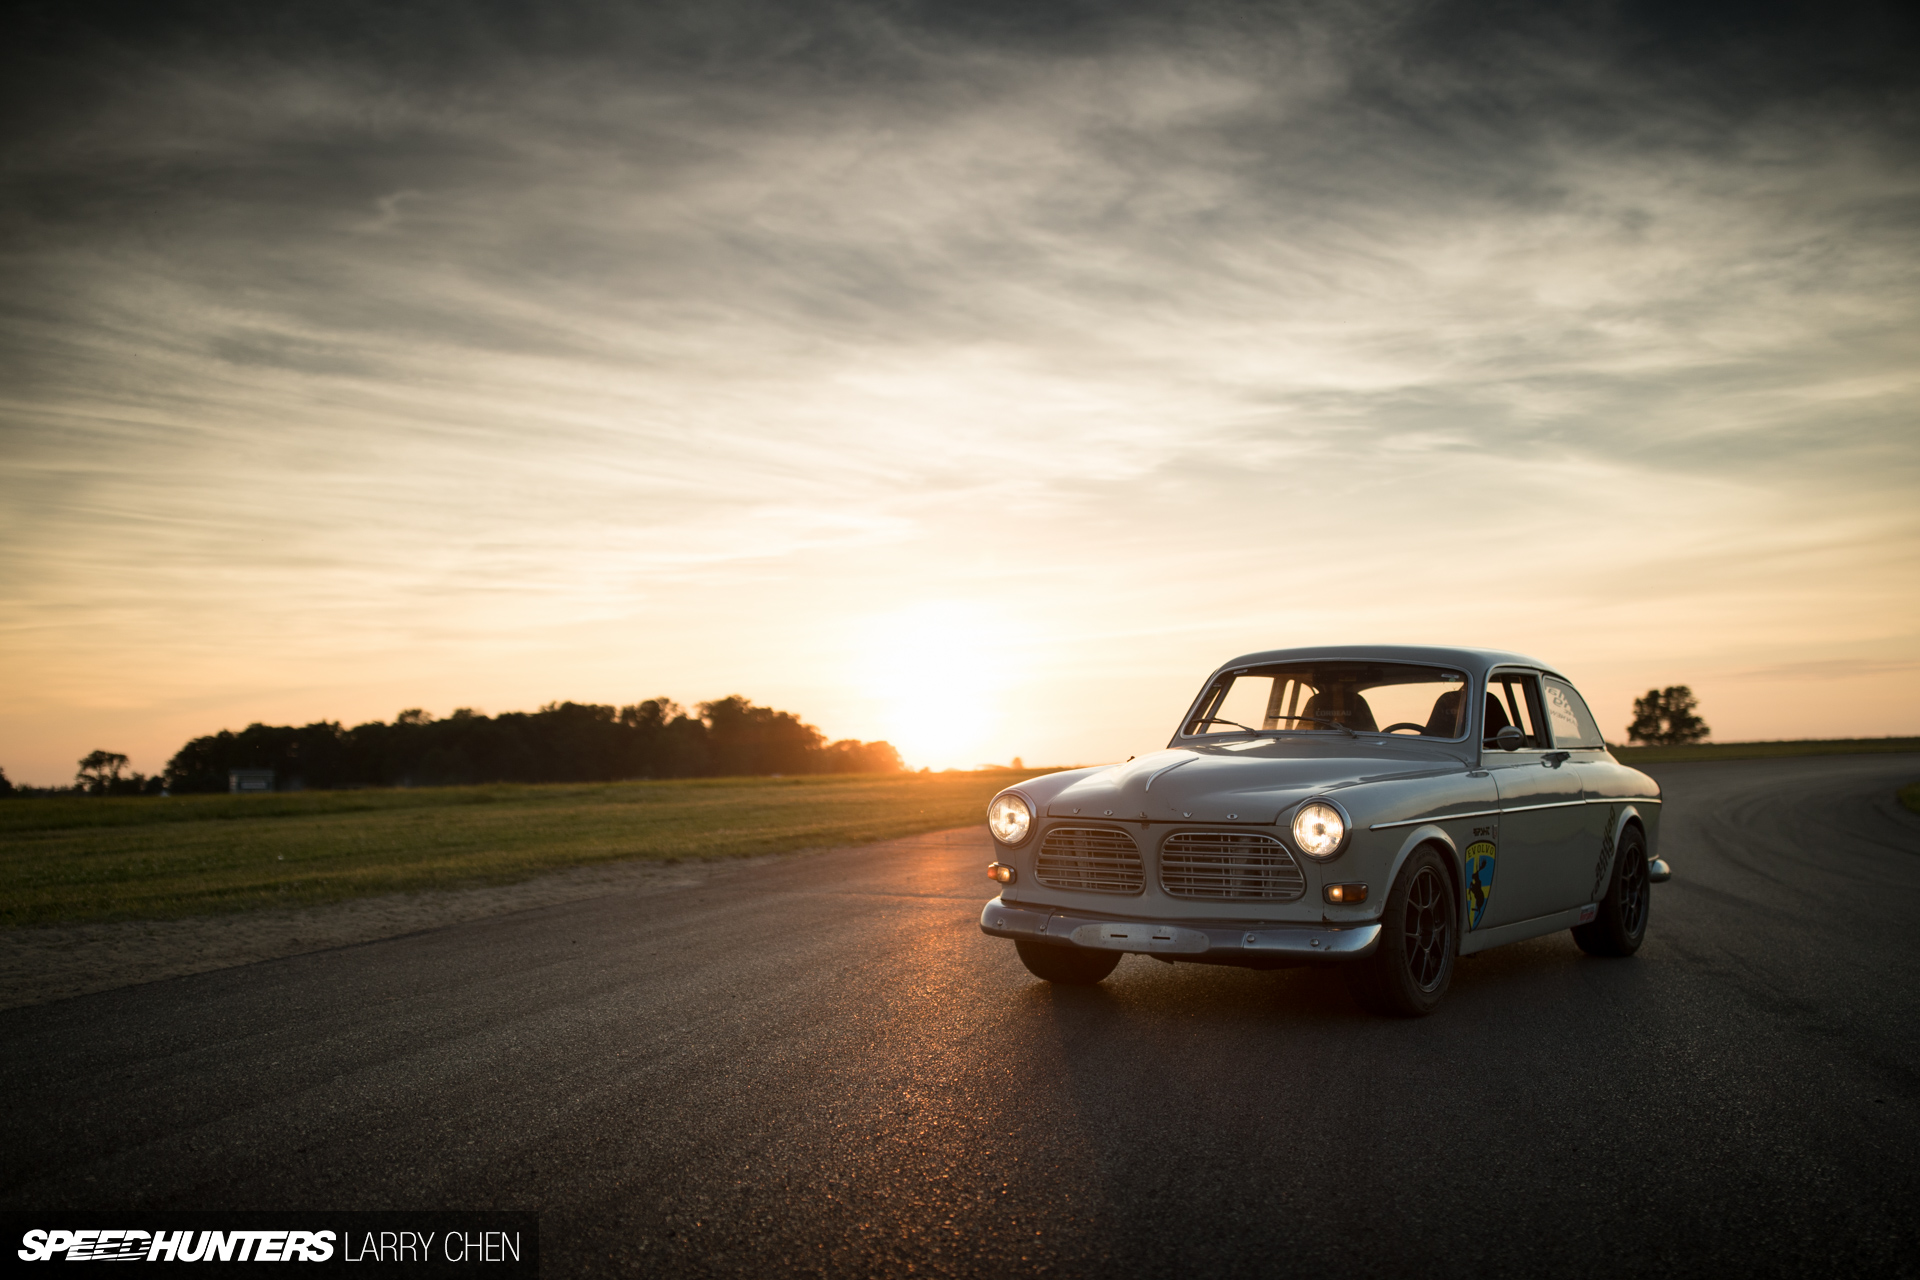 '60s Sweden Meets '90s Japan: The 4G63 Volvo - Speedhunters